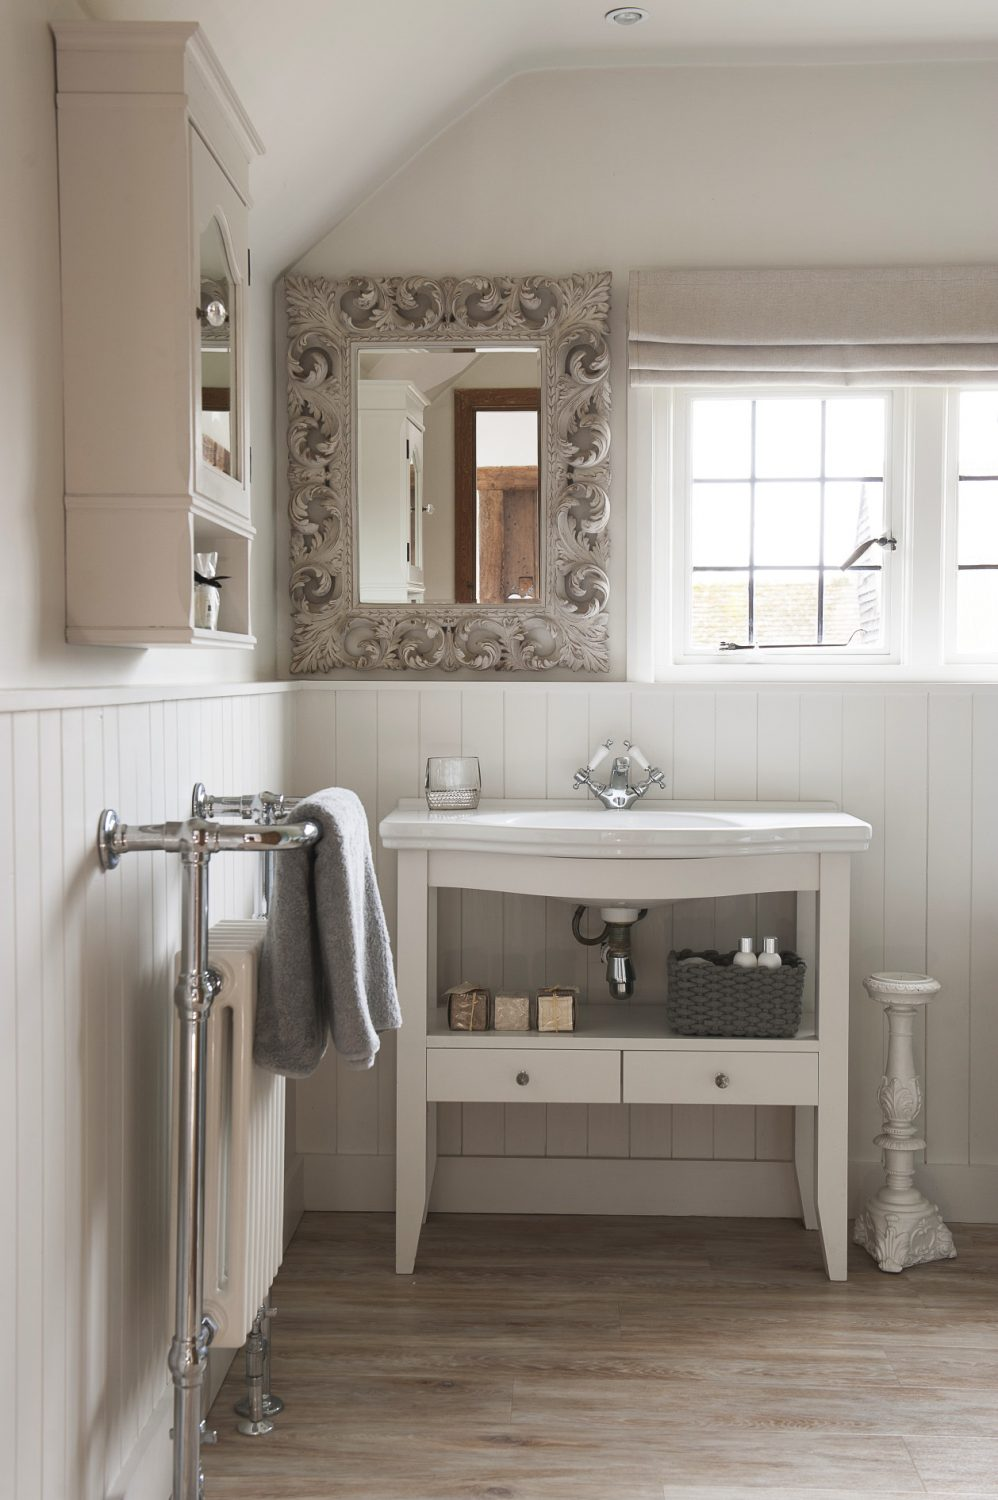 An ornate mirror is a feature in the classic, welcoming bathroom, where tongue-and-groove panelling adds a country cottage feel alongside the painted wood sink unit